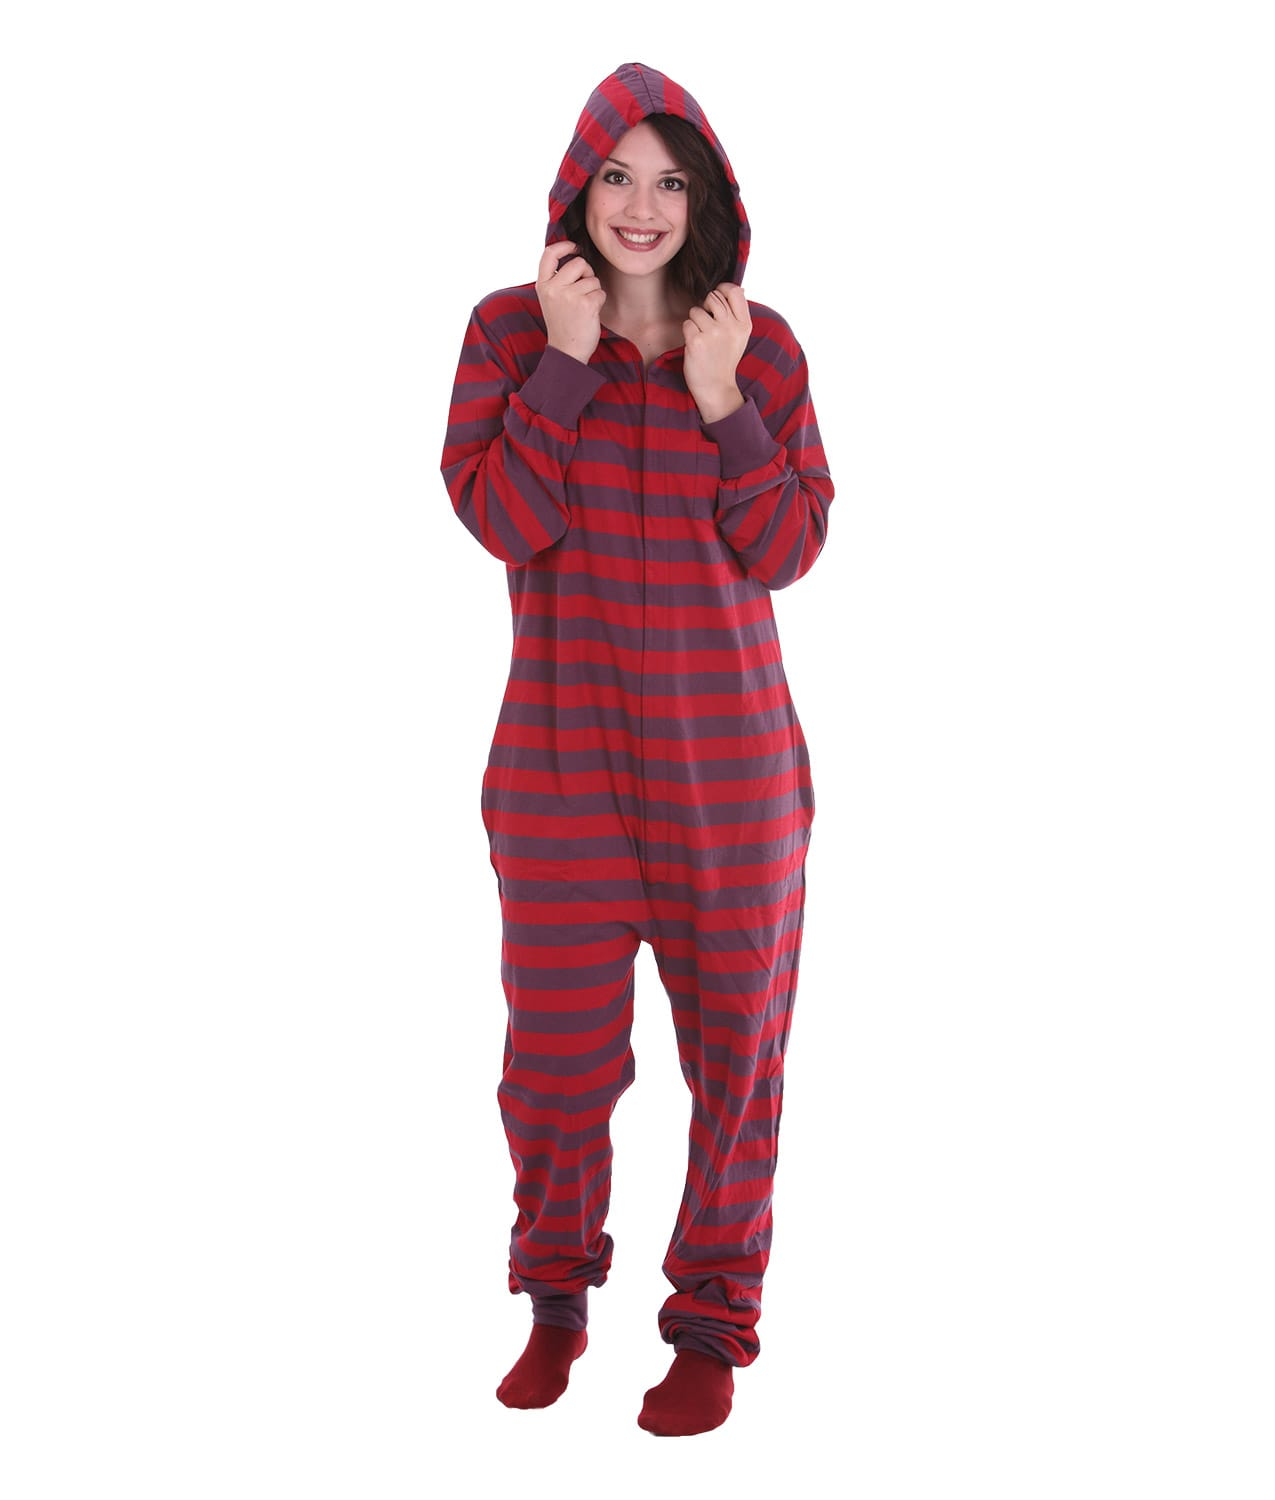 New Unisex Adult Hooded Onesie Suit All in One Jumpsuit One Piece Suit Girls, Adults, and Pets out of 5 stars 8. $ - $ Next. Have a question? Find answers in product info, Q&As, reviews Now you can feel like a little kid again with an adult hooded onesie! Read more. Published on /5(13).